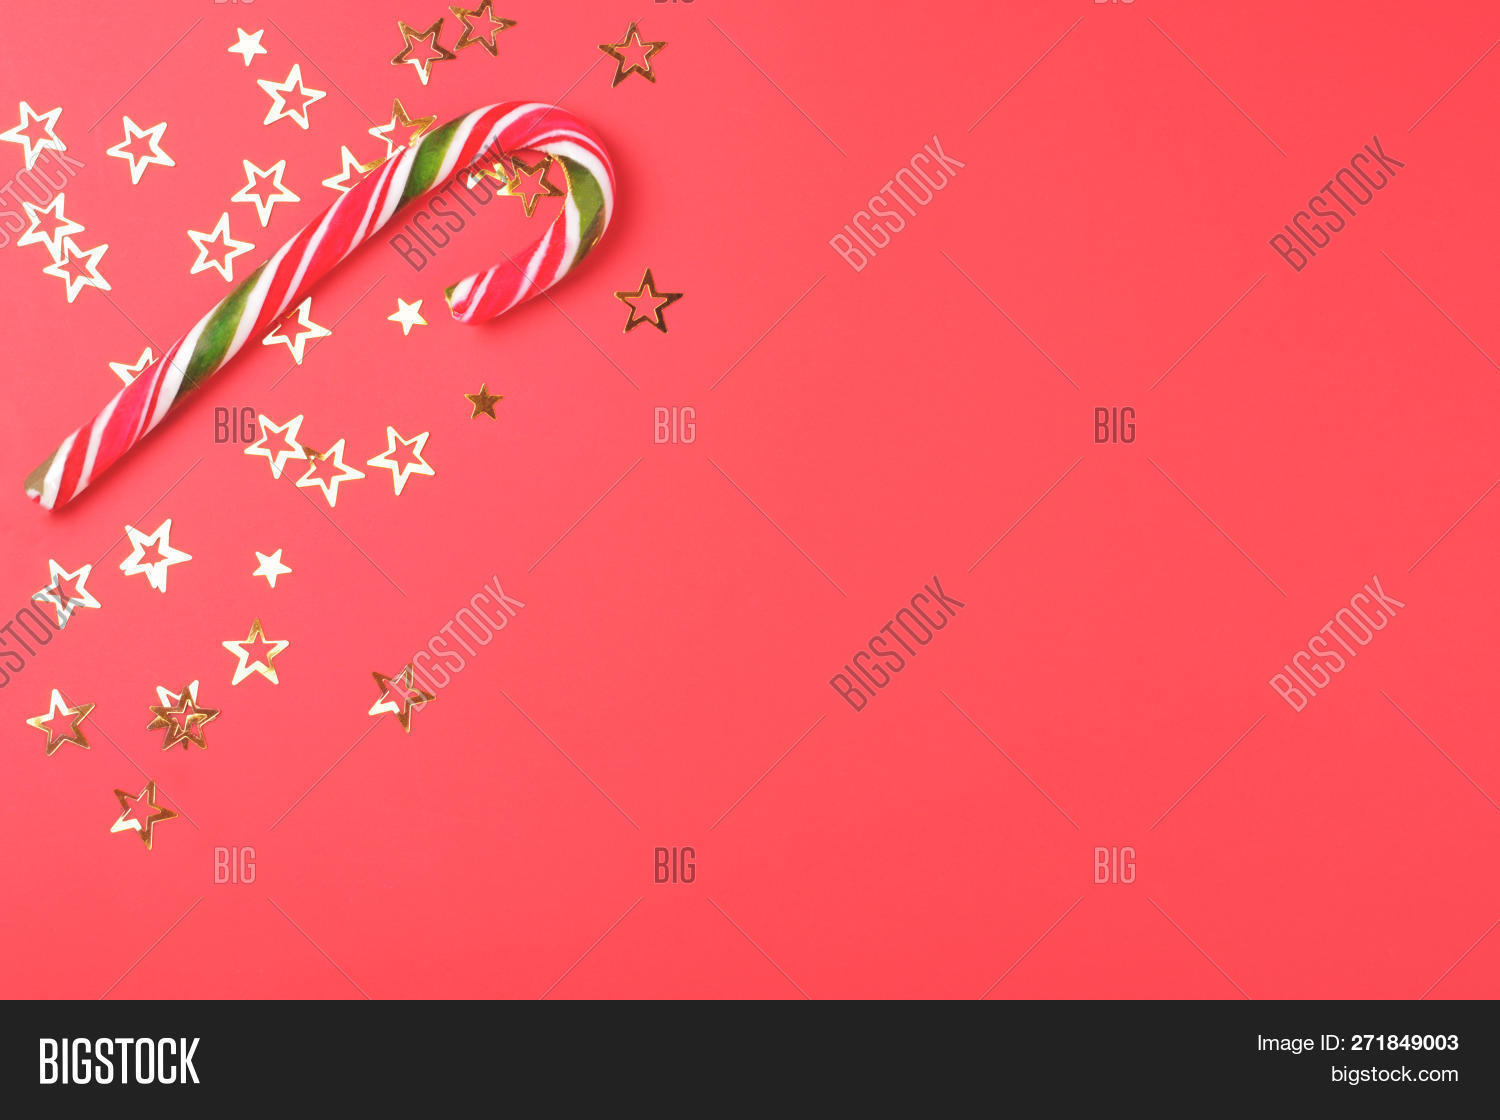 Christmas Striped Image & Photo (Free Trial) | Bigstock